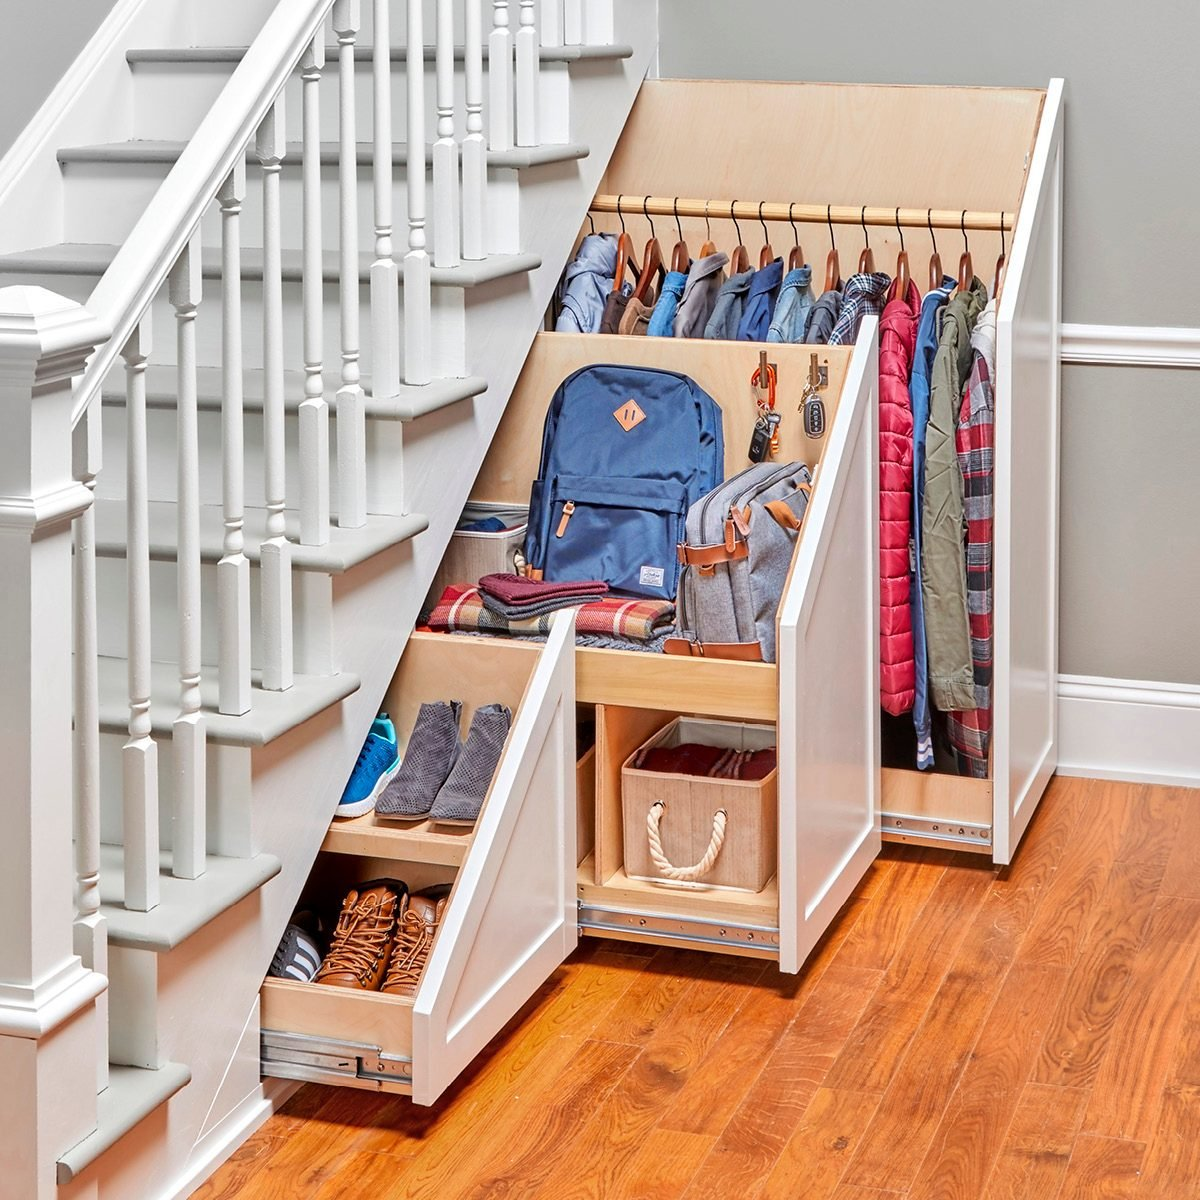 How To Build An Under The Stairs Storage Unit Family Handyman